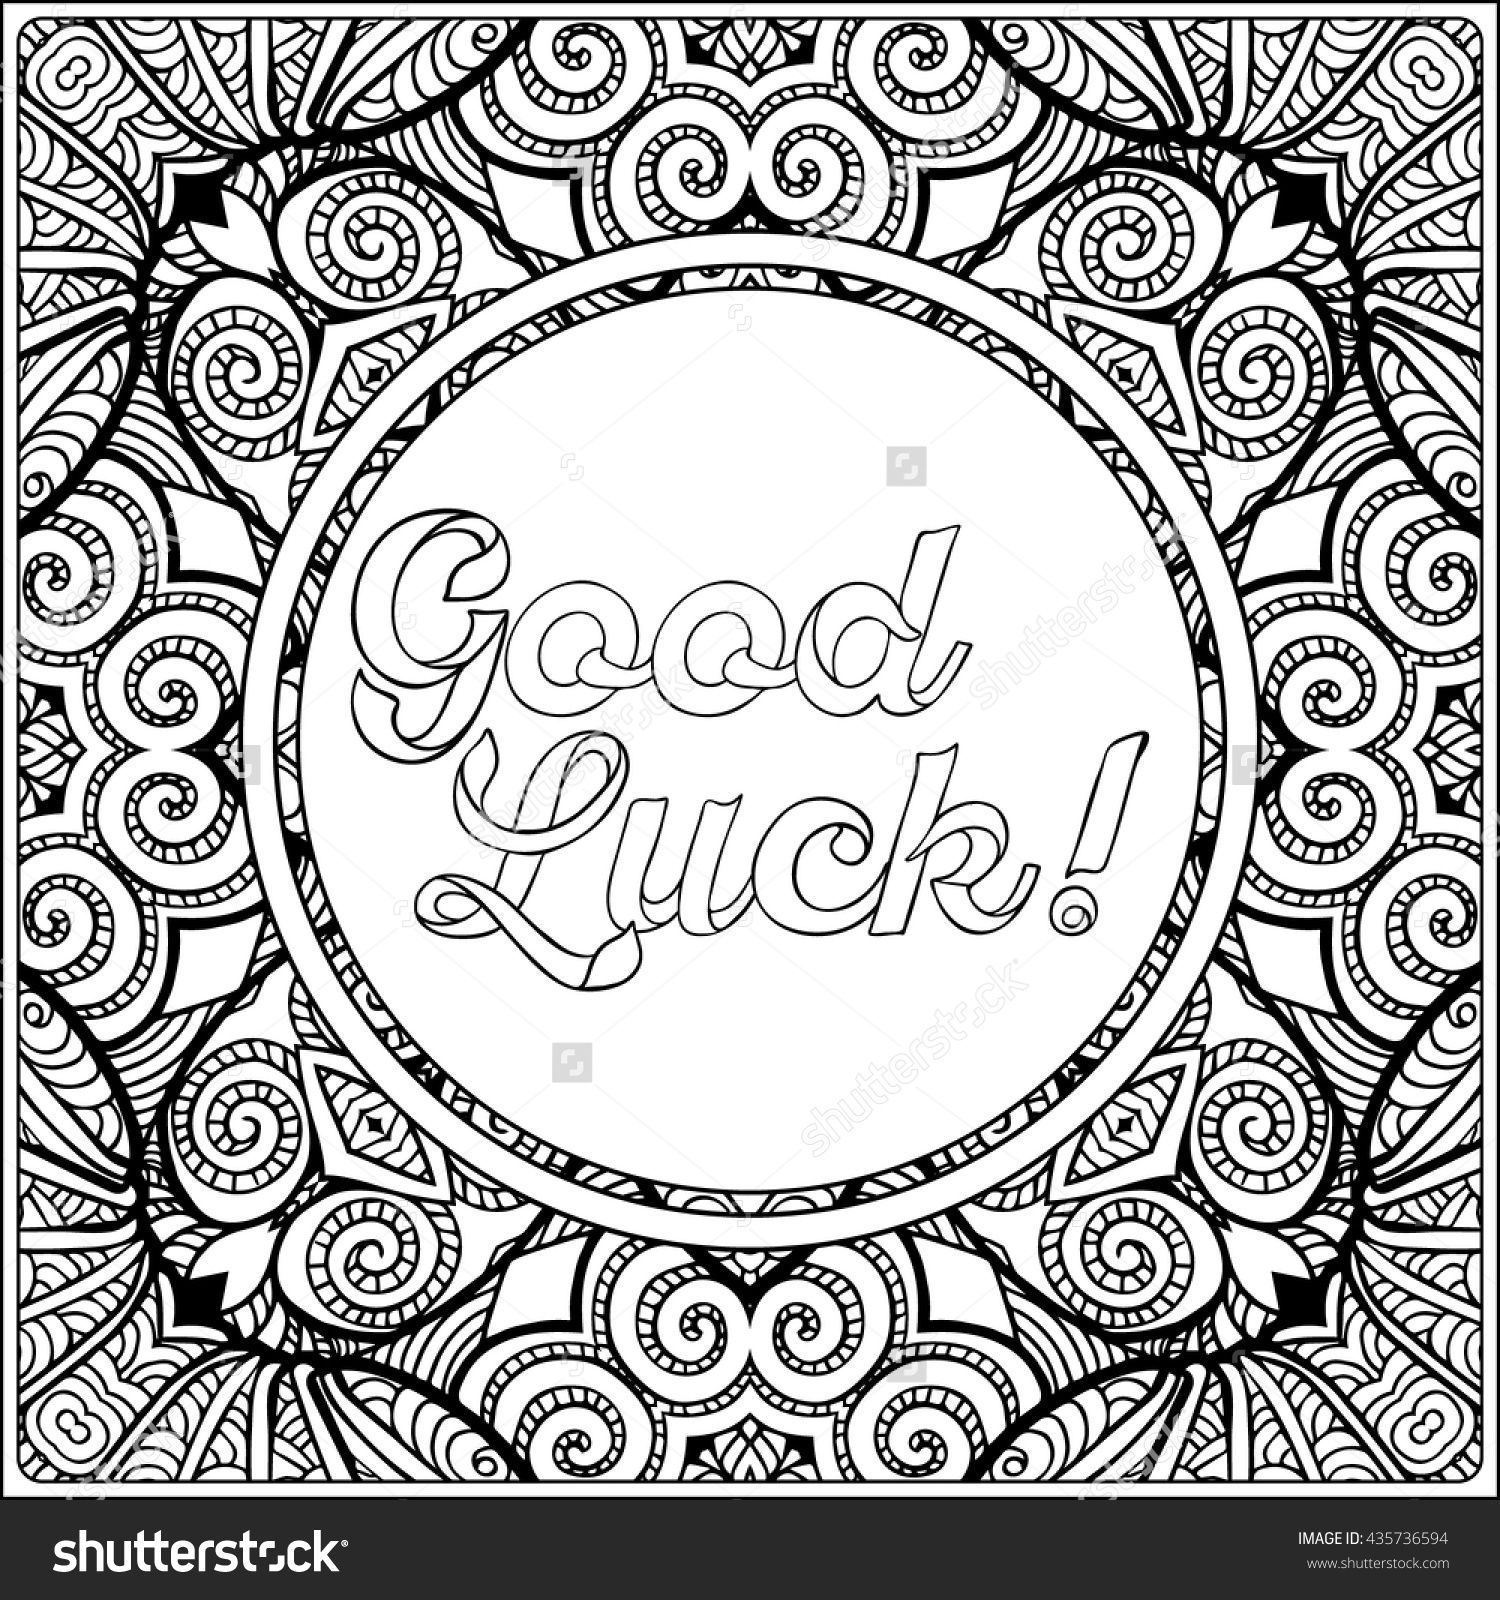 Coloring Page With Message On Vintage Pattern Background Adult Book Outline Drawing Vector Illustration